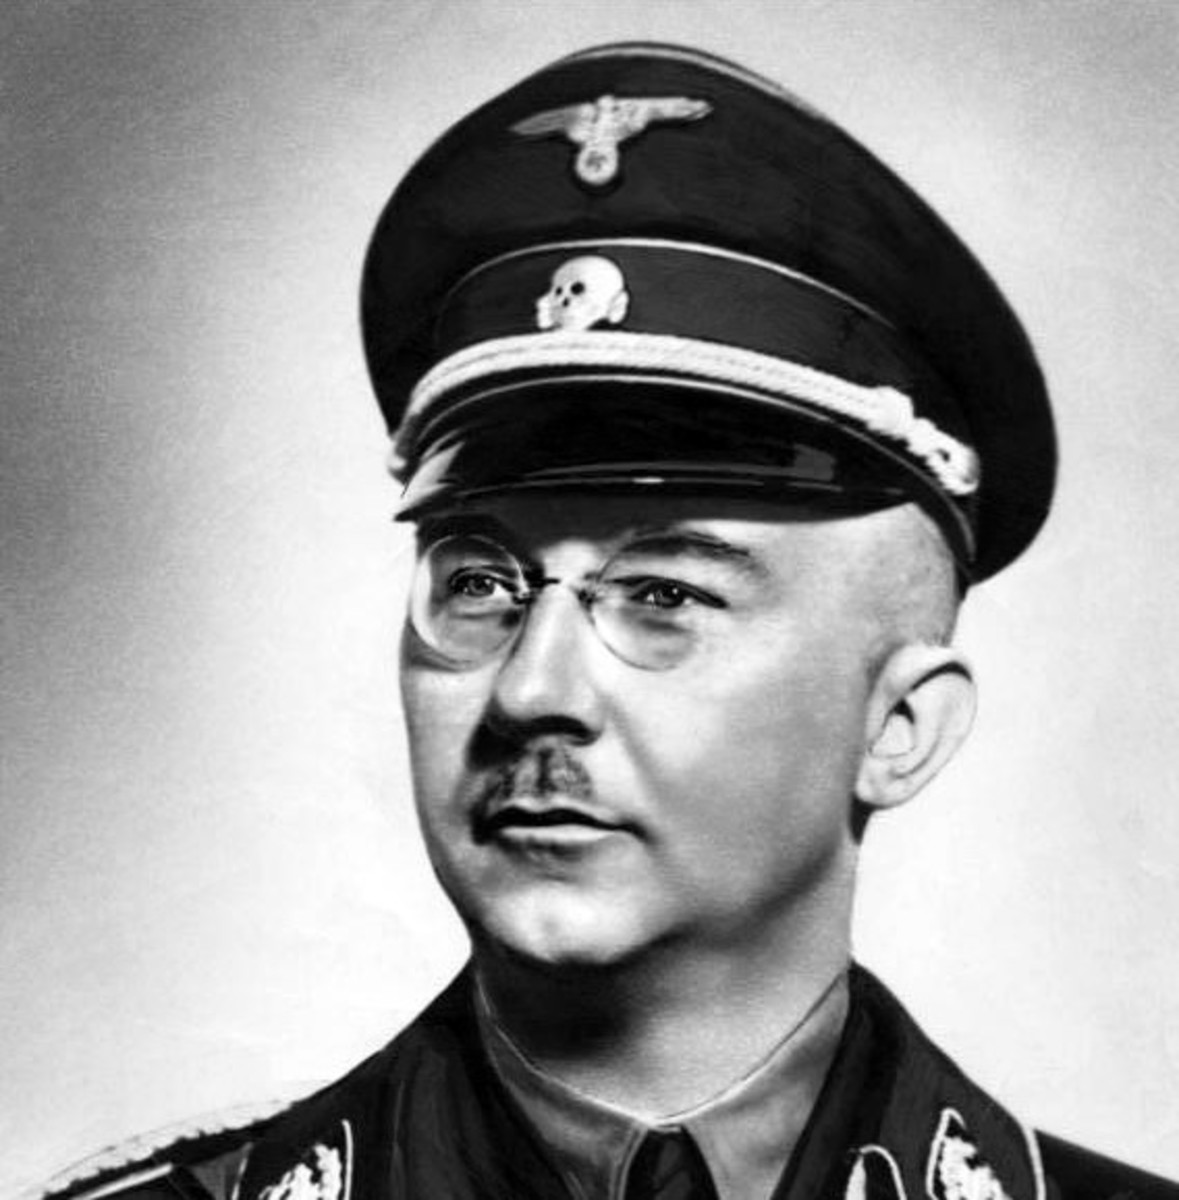 Heinrich Luitpold Himmler 7 October 1900 – 23 May 1945) established the Nazi SS Race and Settlement Office